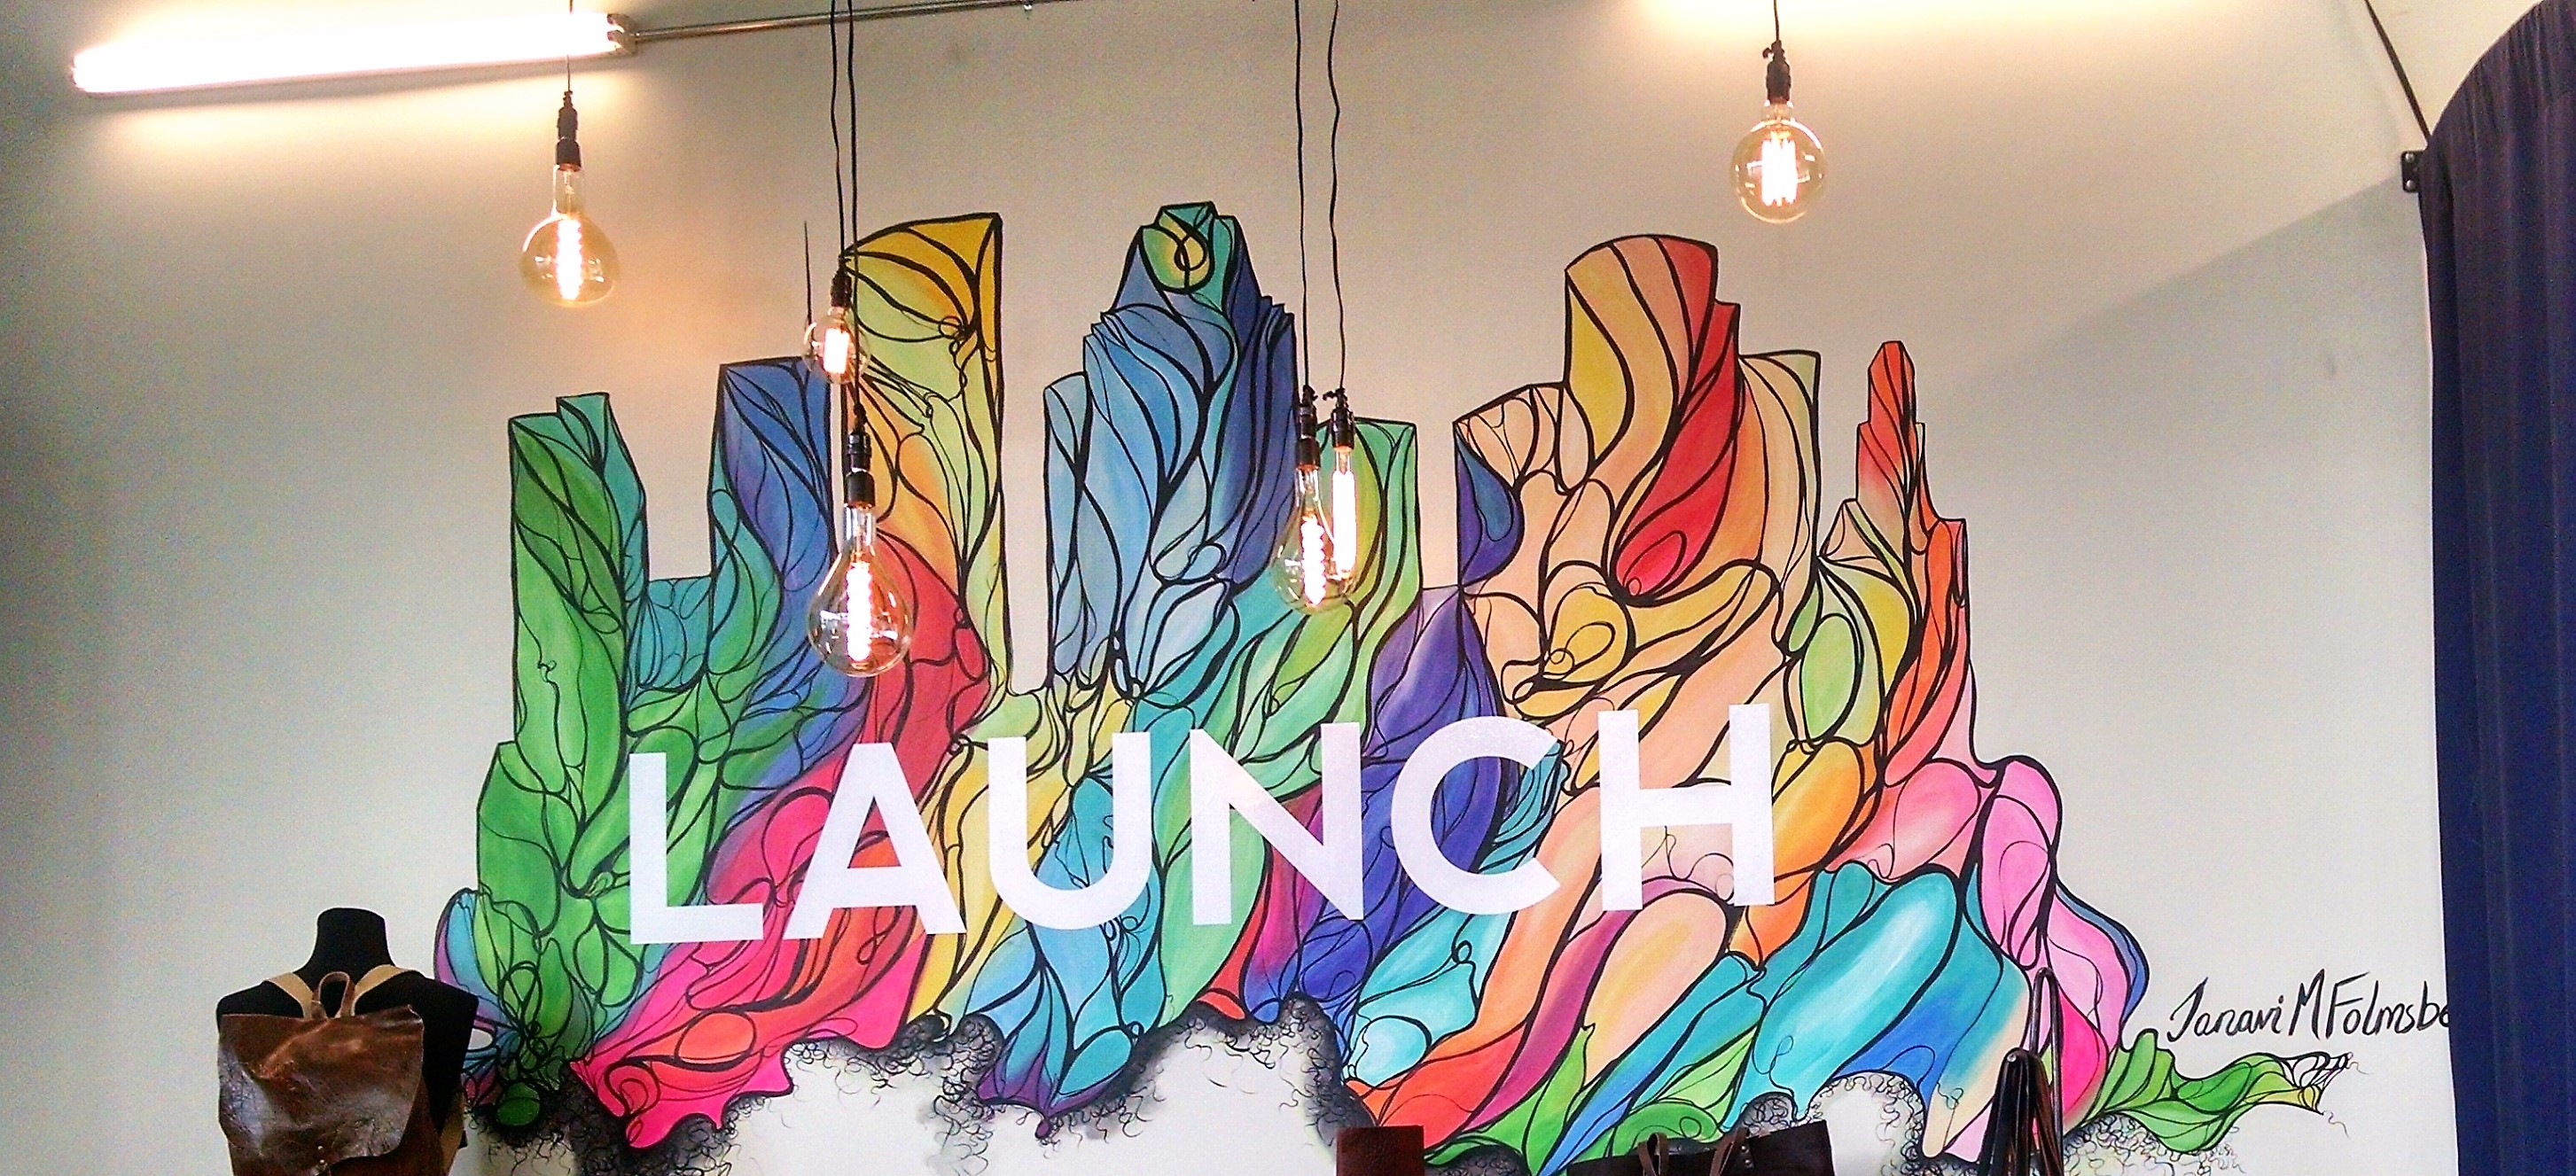 LAUNCH pop-up shop has Houston designers with a wide array of creativity - HOT IN HOUSTON NOW & LAUNCH pop-up shop has Houston designers with a wide array of ...